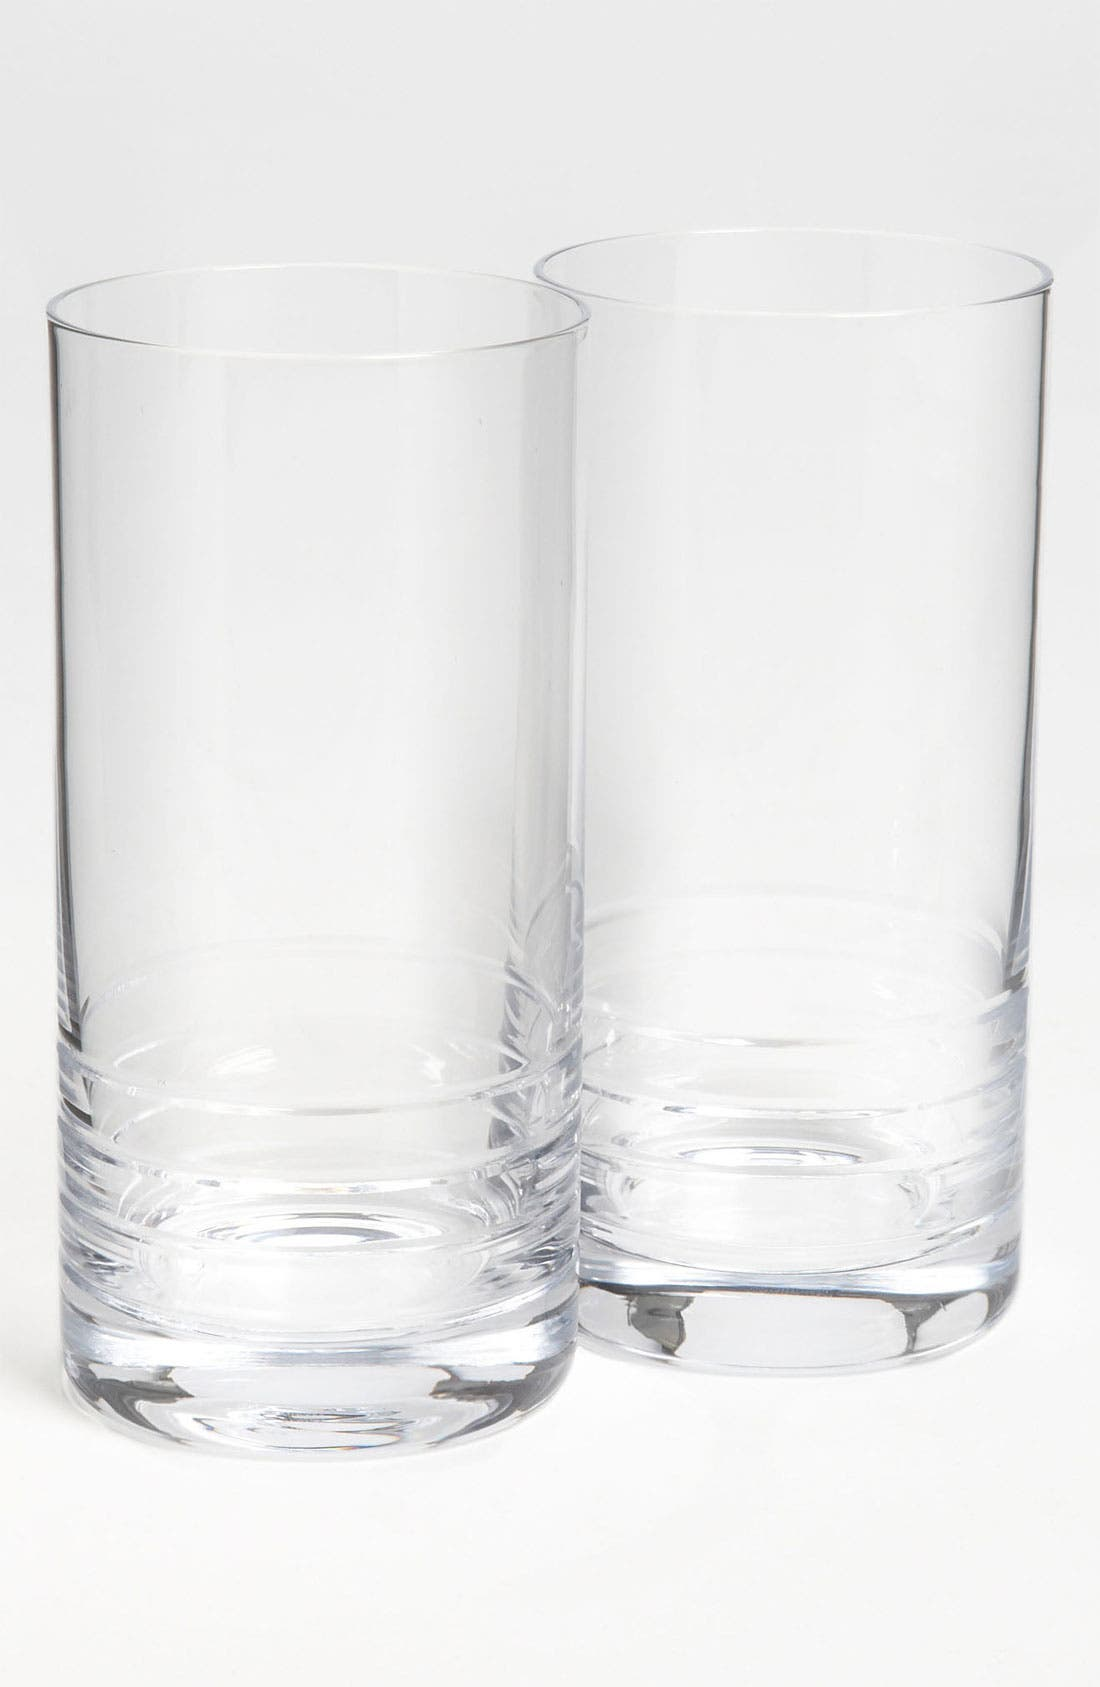 Alternate Image 1 Selected - kate spade new york 'percival place' highball glasses (Set of 2)